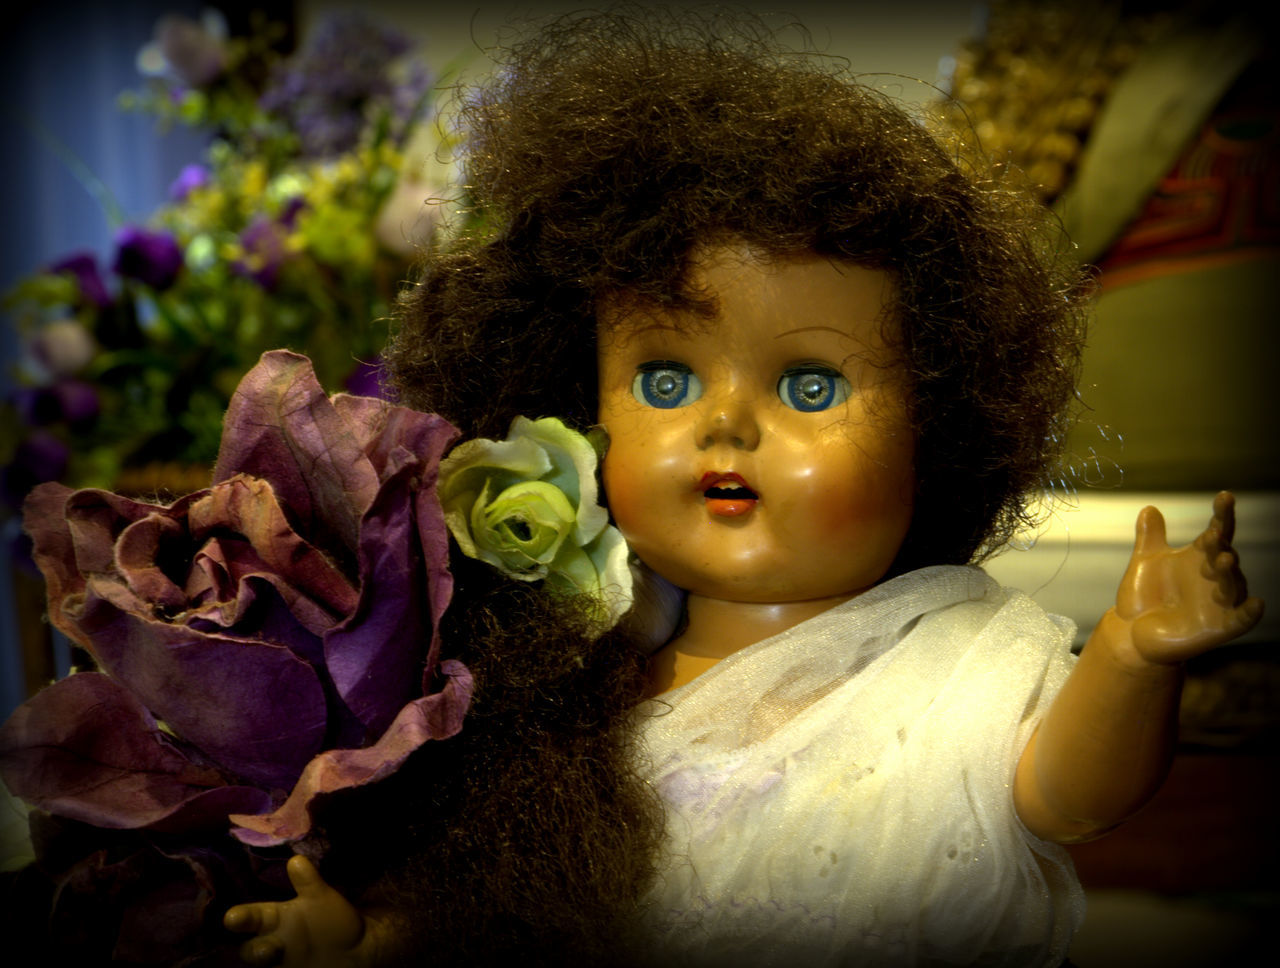 Blue Eye Childhood Childhood Remembrance Close-up Crockery Doll Lieblingsteil Outdoors Purple Flower Macro Remembering Old Times Stuffed Toy